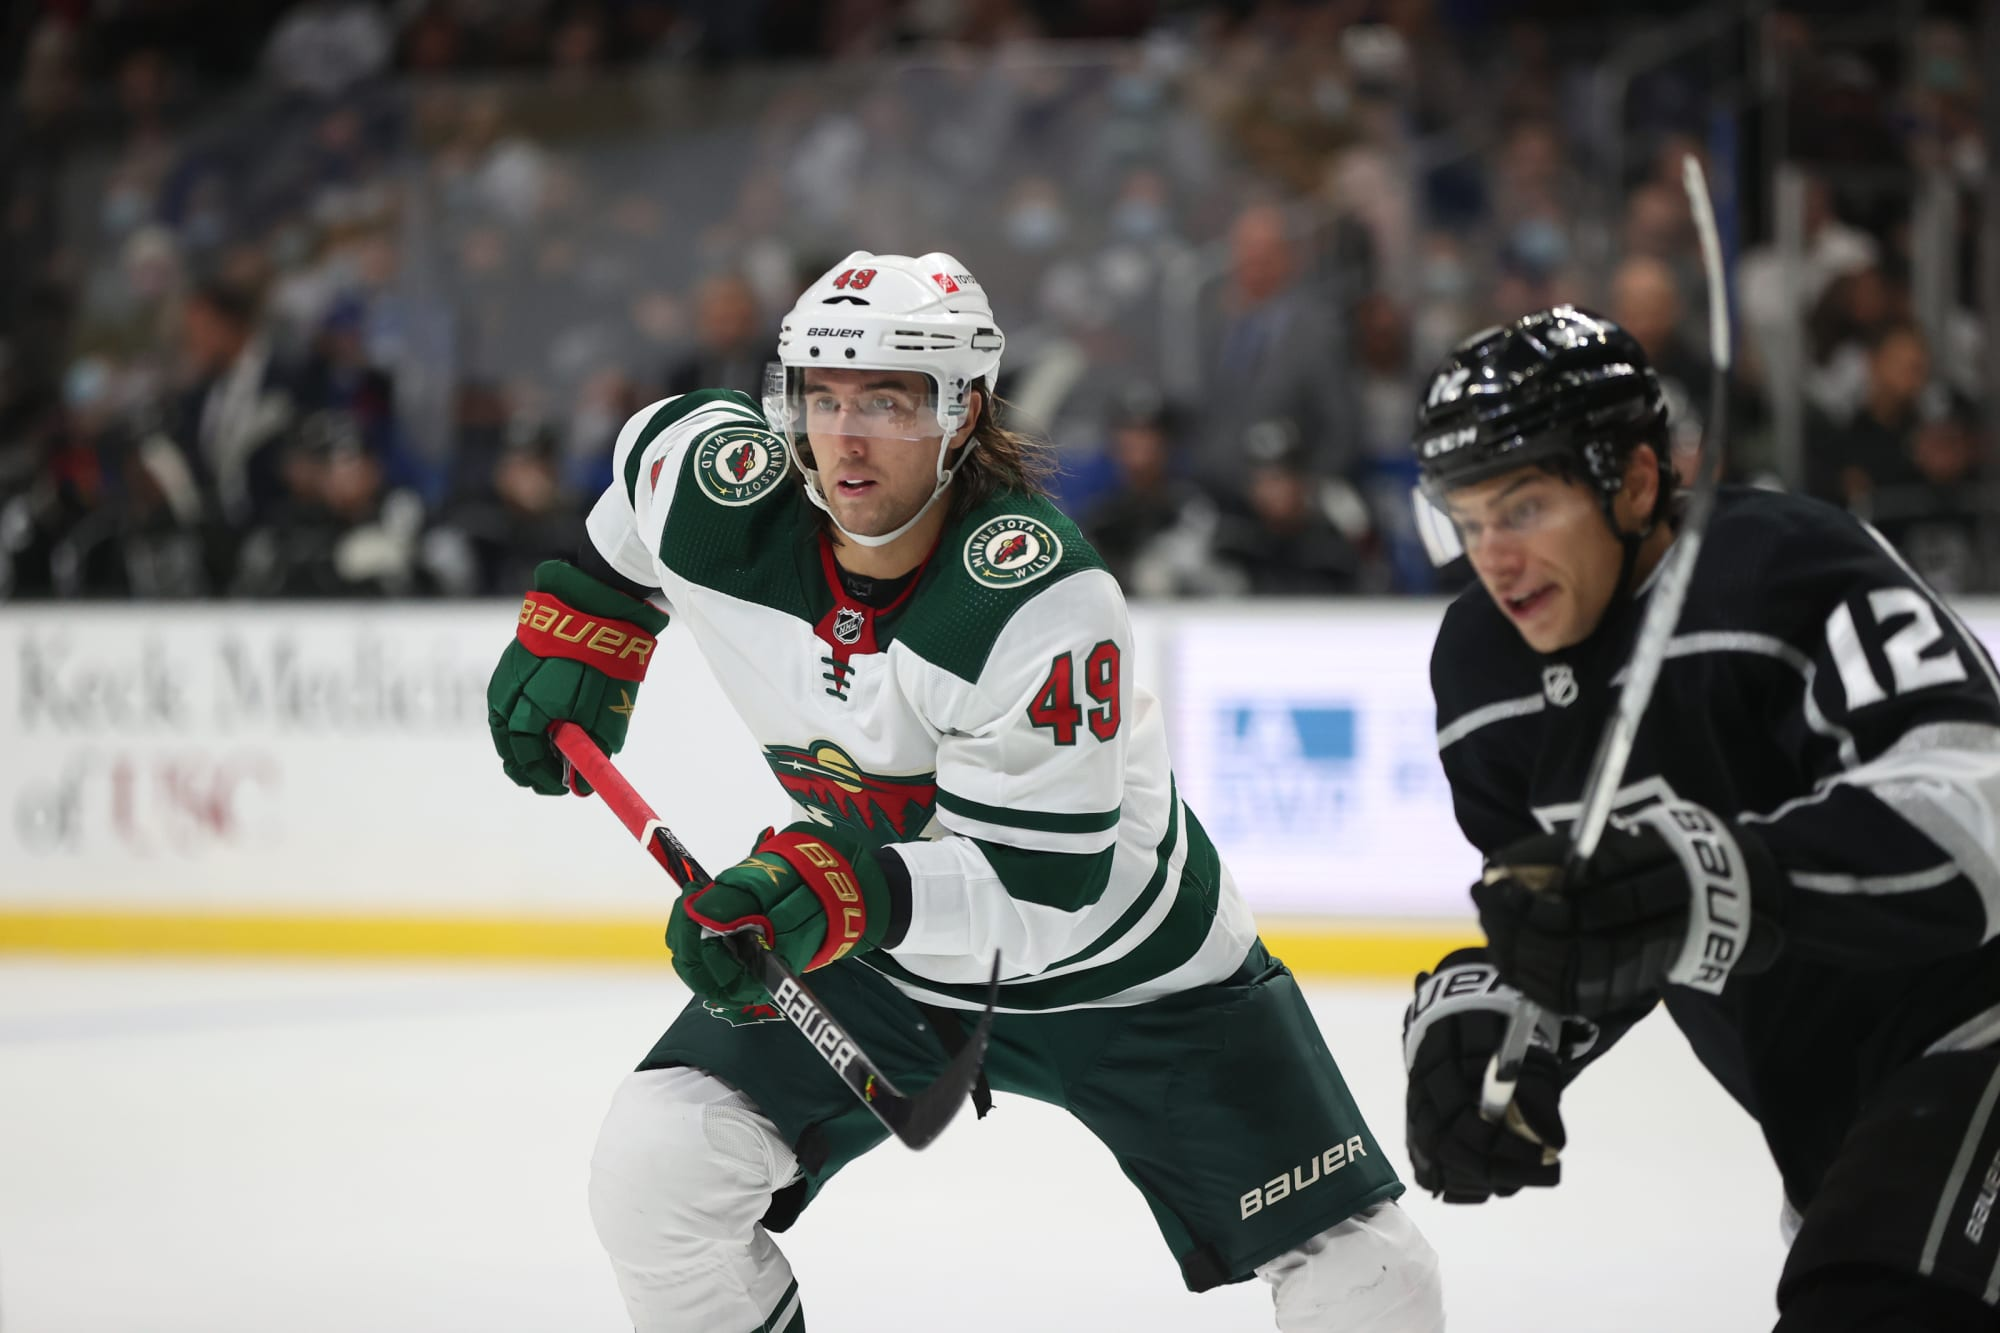 Minnesota Wild: Just two games in but so far, so good